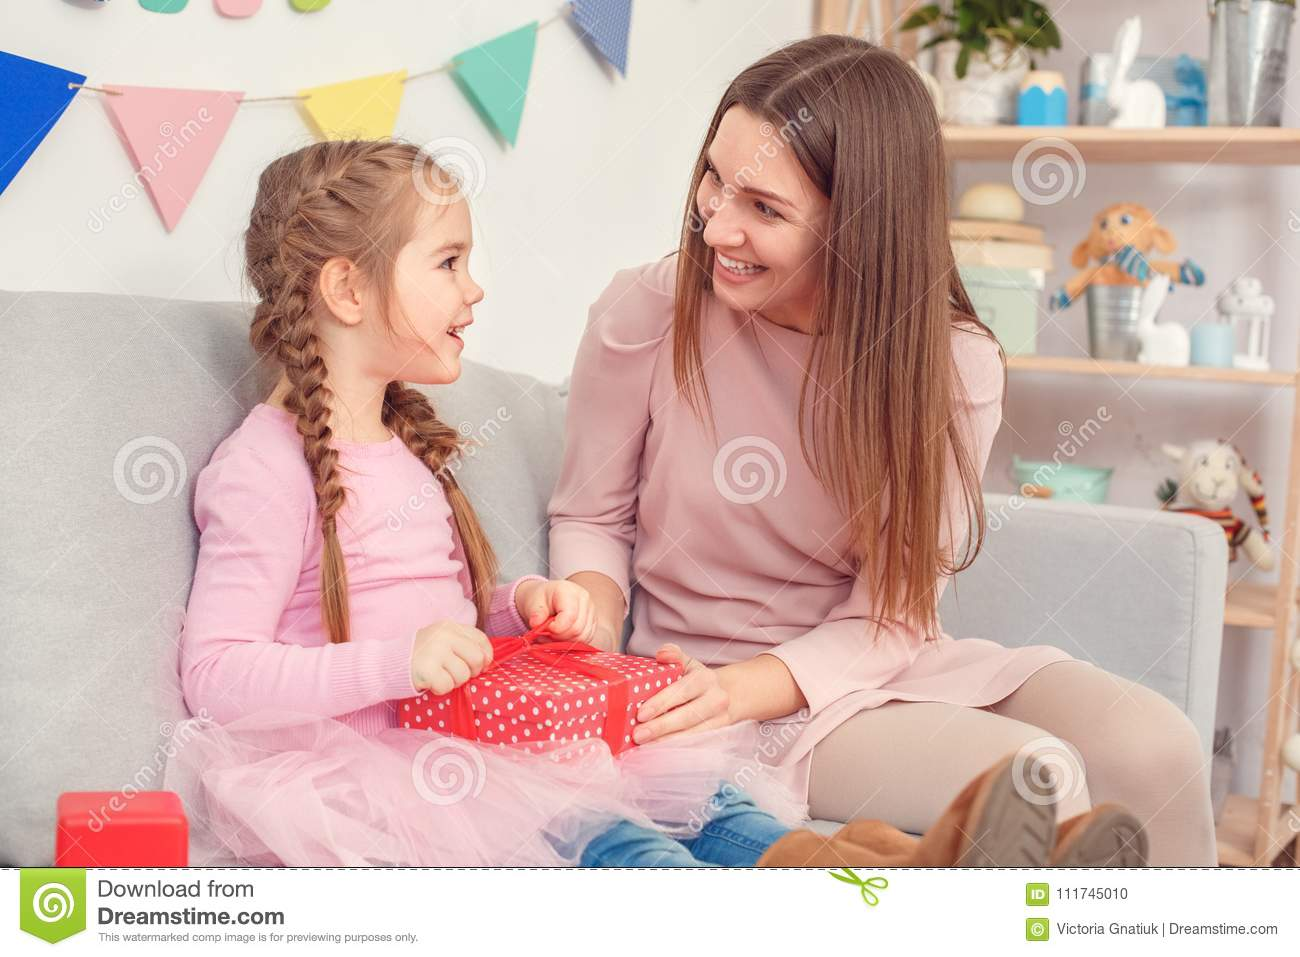 Mother And Daughter Together At Home Celebration Concept Sitting Mom Making A Gift For